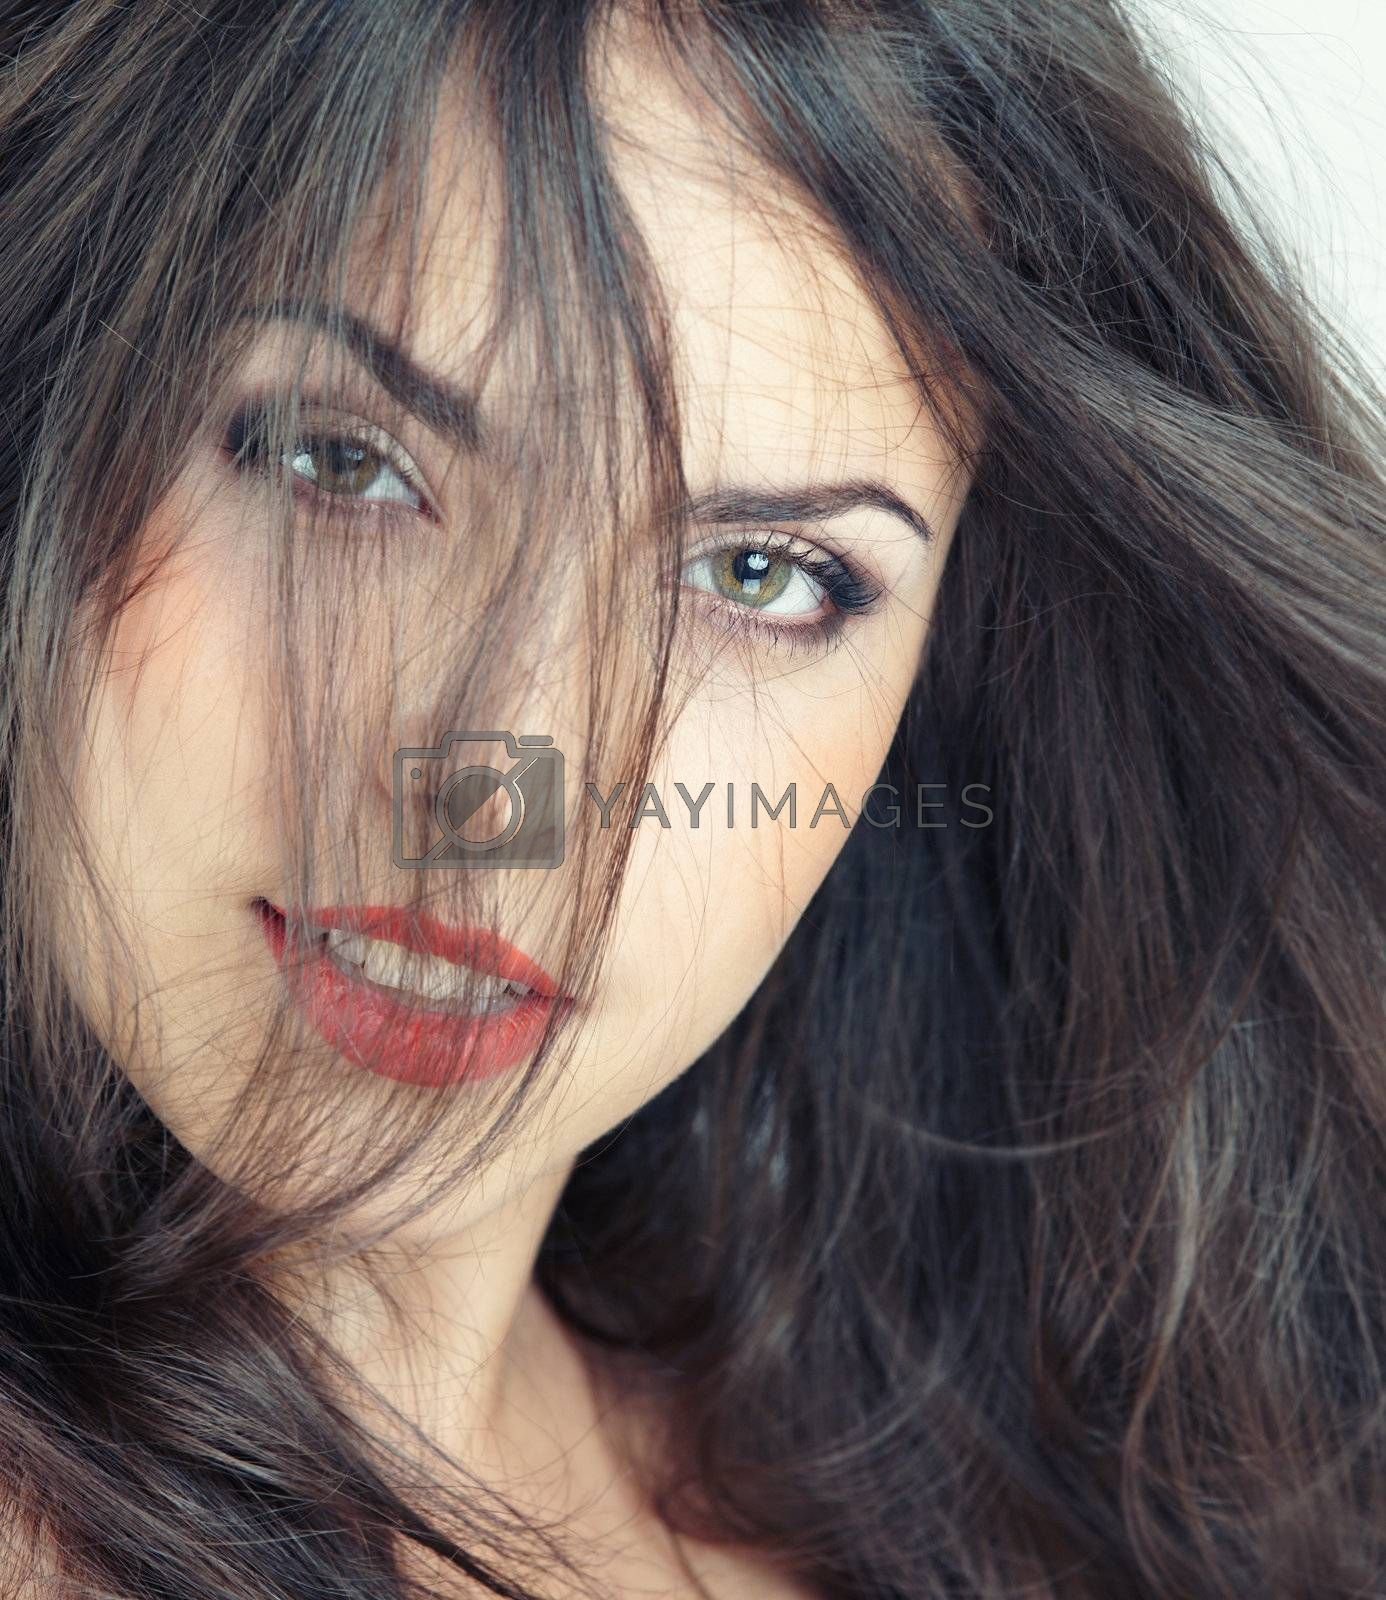 Smiling beautiful lady. Studio colorful photo